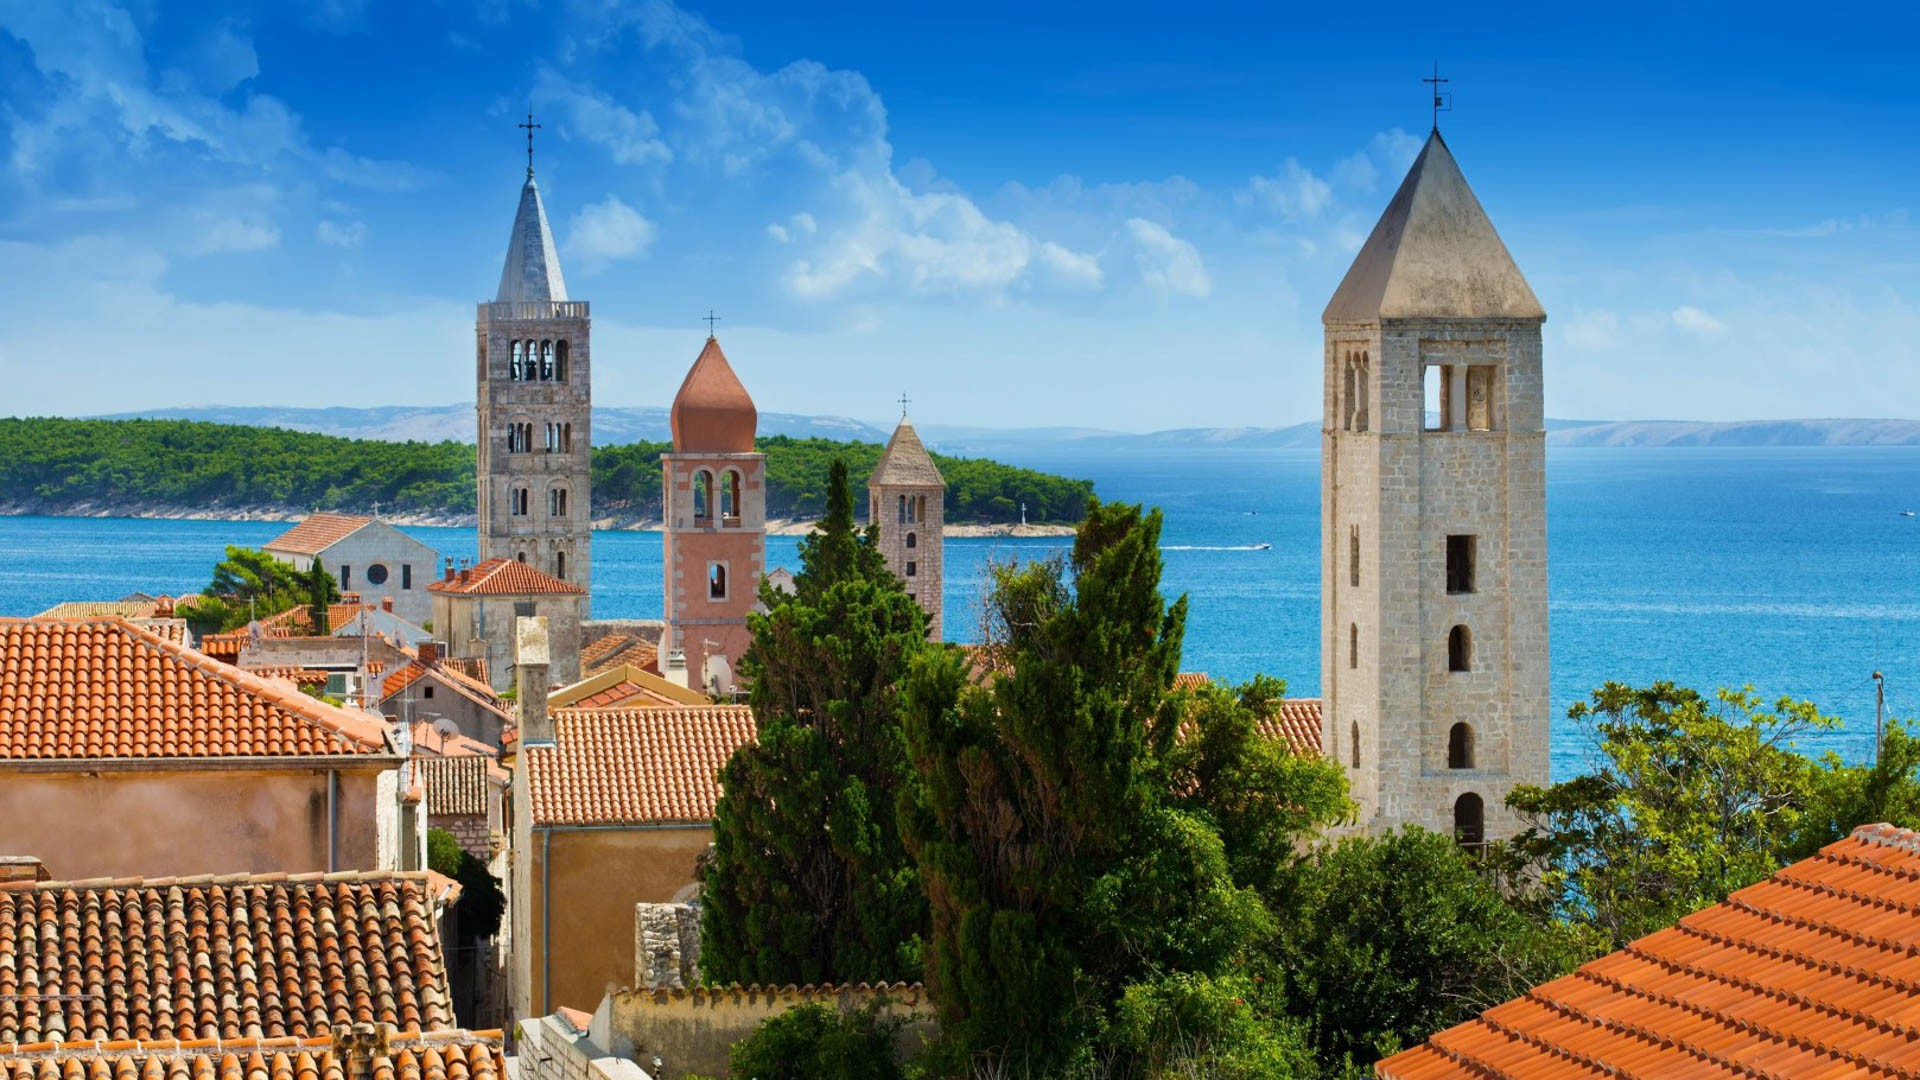 Rab - Adriatic Sea | Croatia Cruise Croatia Cruise